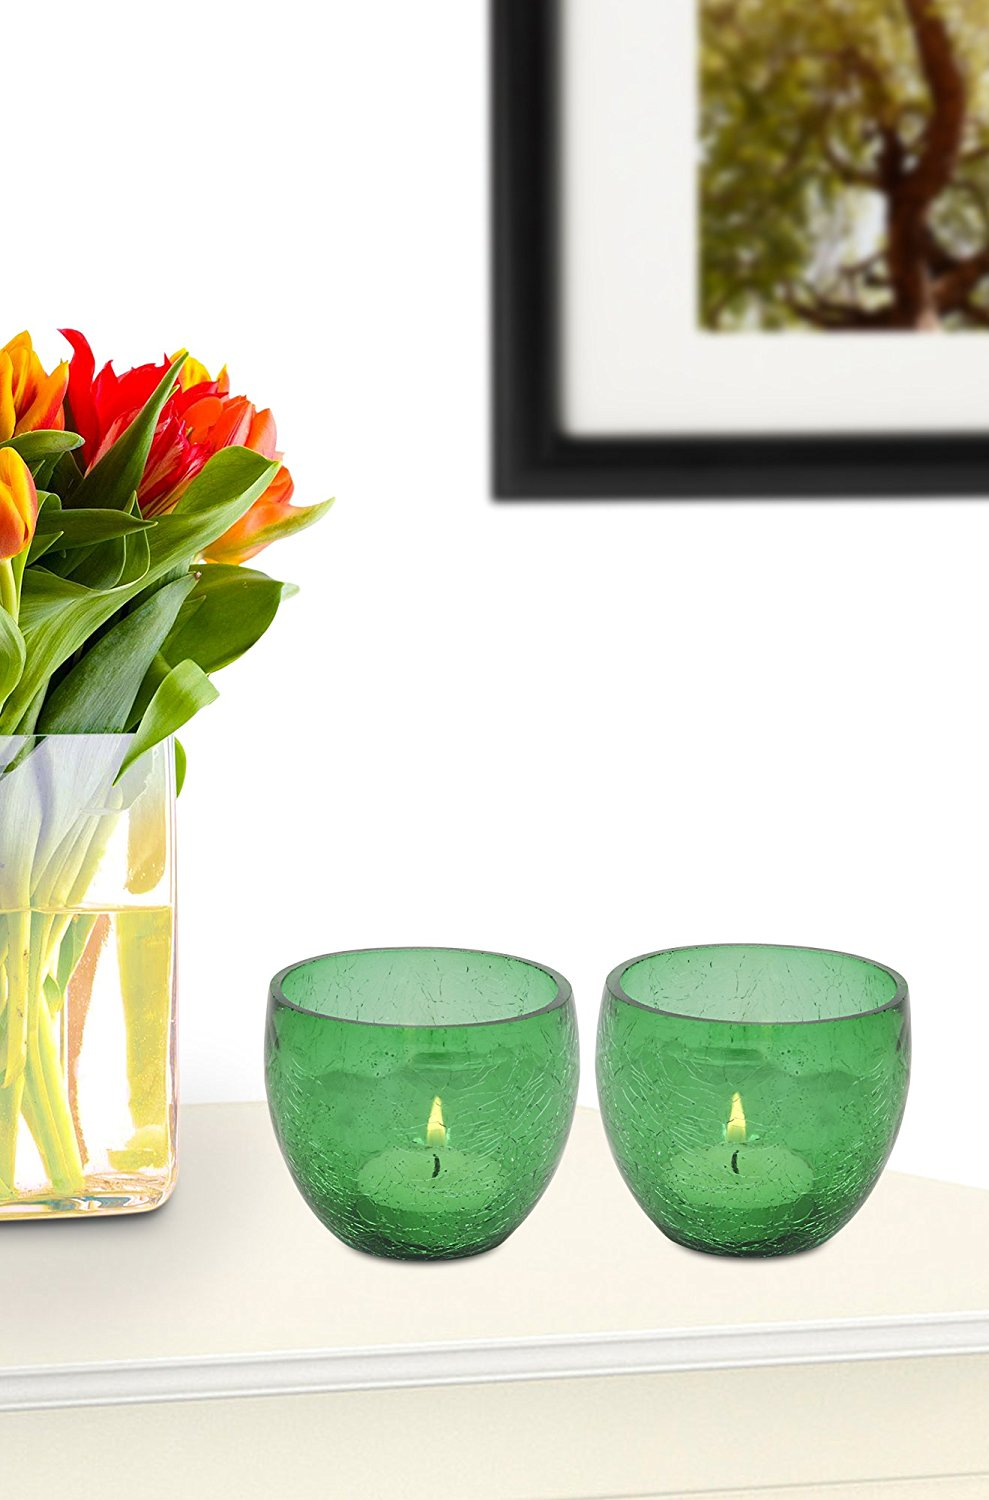 Pair Of Candle Holder / Tea Light Holder / Table Top Candle Holder /Cut Glass Candle Holder For Office Home Crack Glass Design 3X3X3 Inch